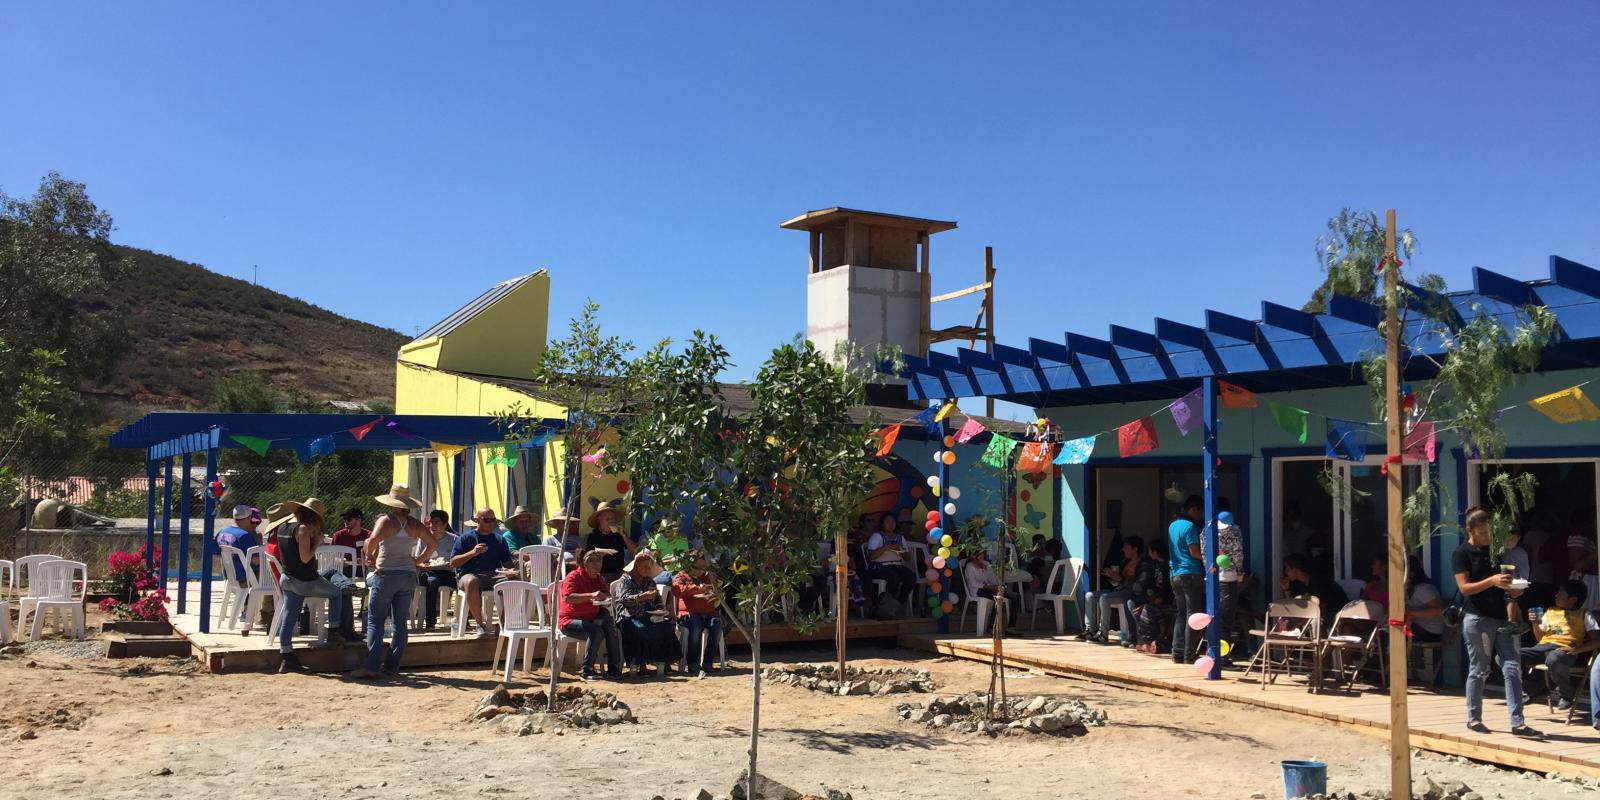 The TJ House prototype laid the foundation for the Cerro Azul Community Center constructed in 2016